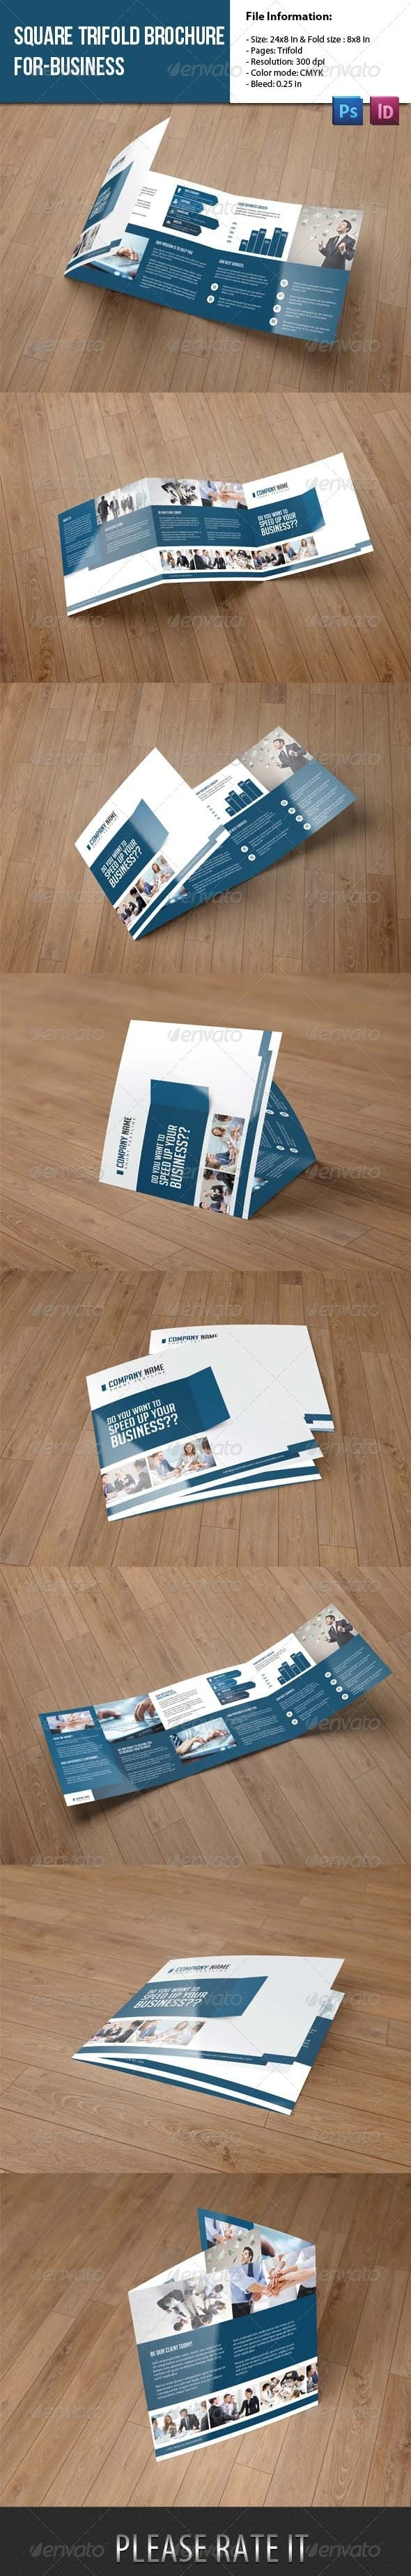 Square Trifold Brochure for Business - Corporate Brochures